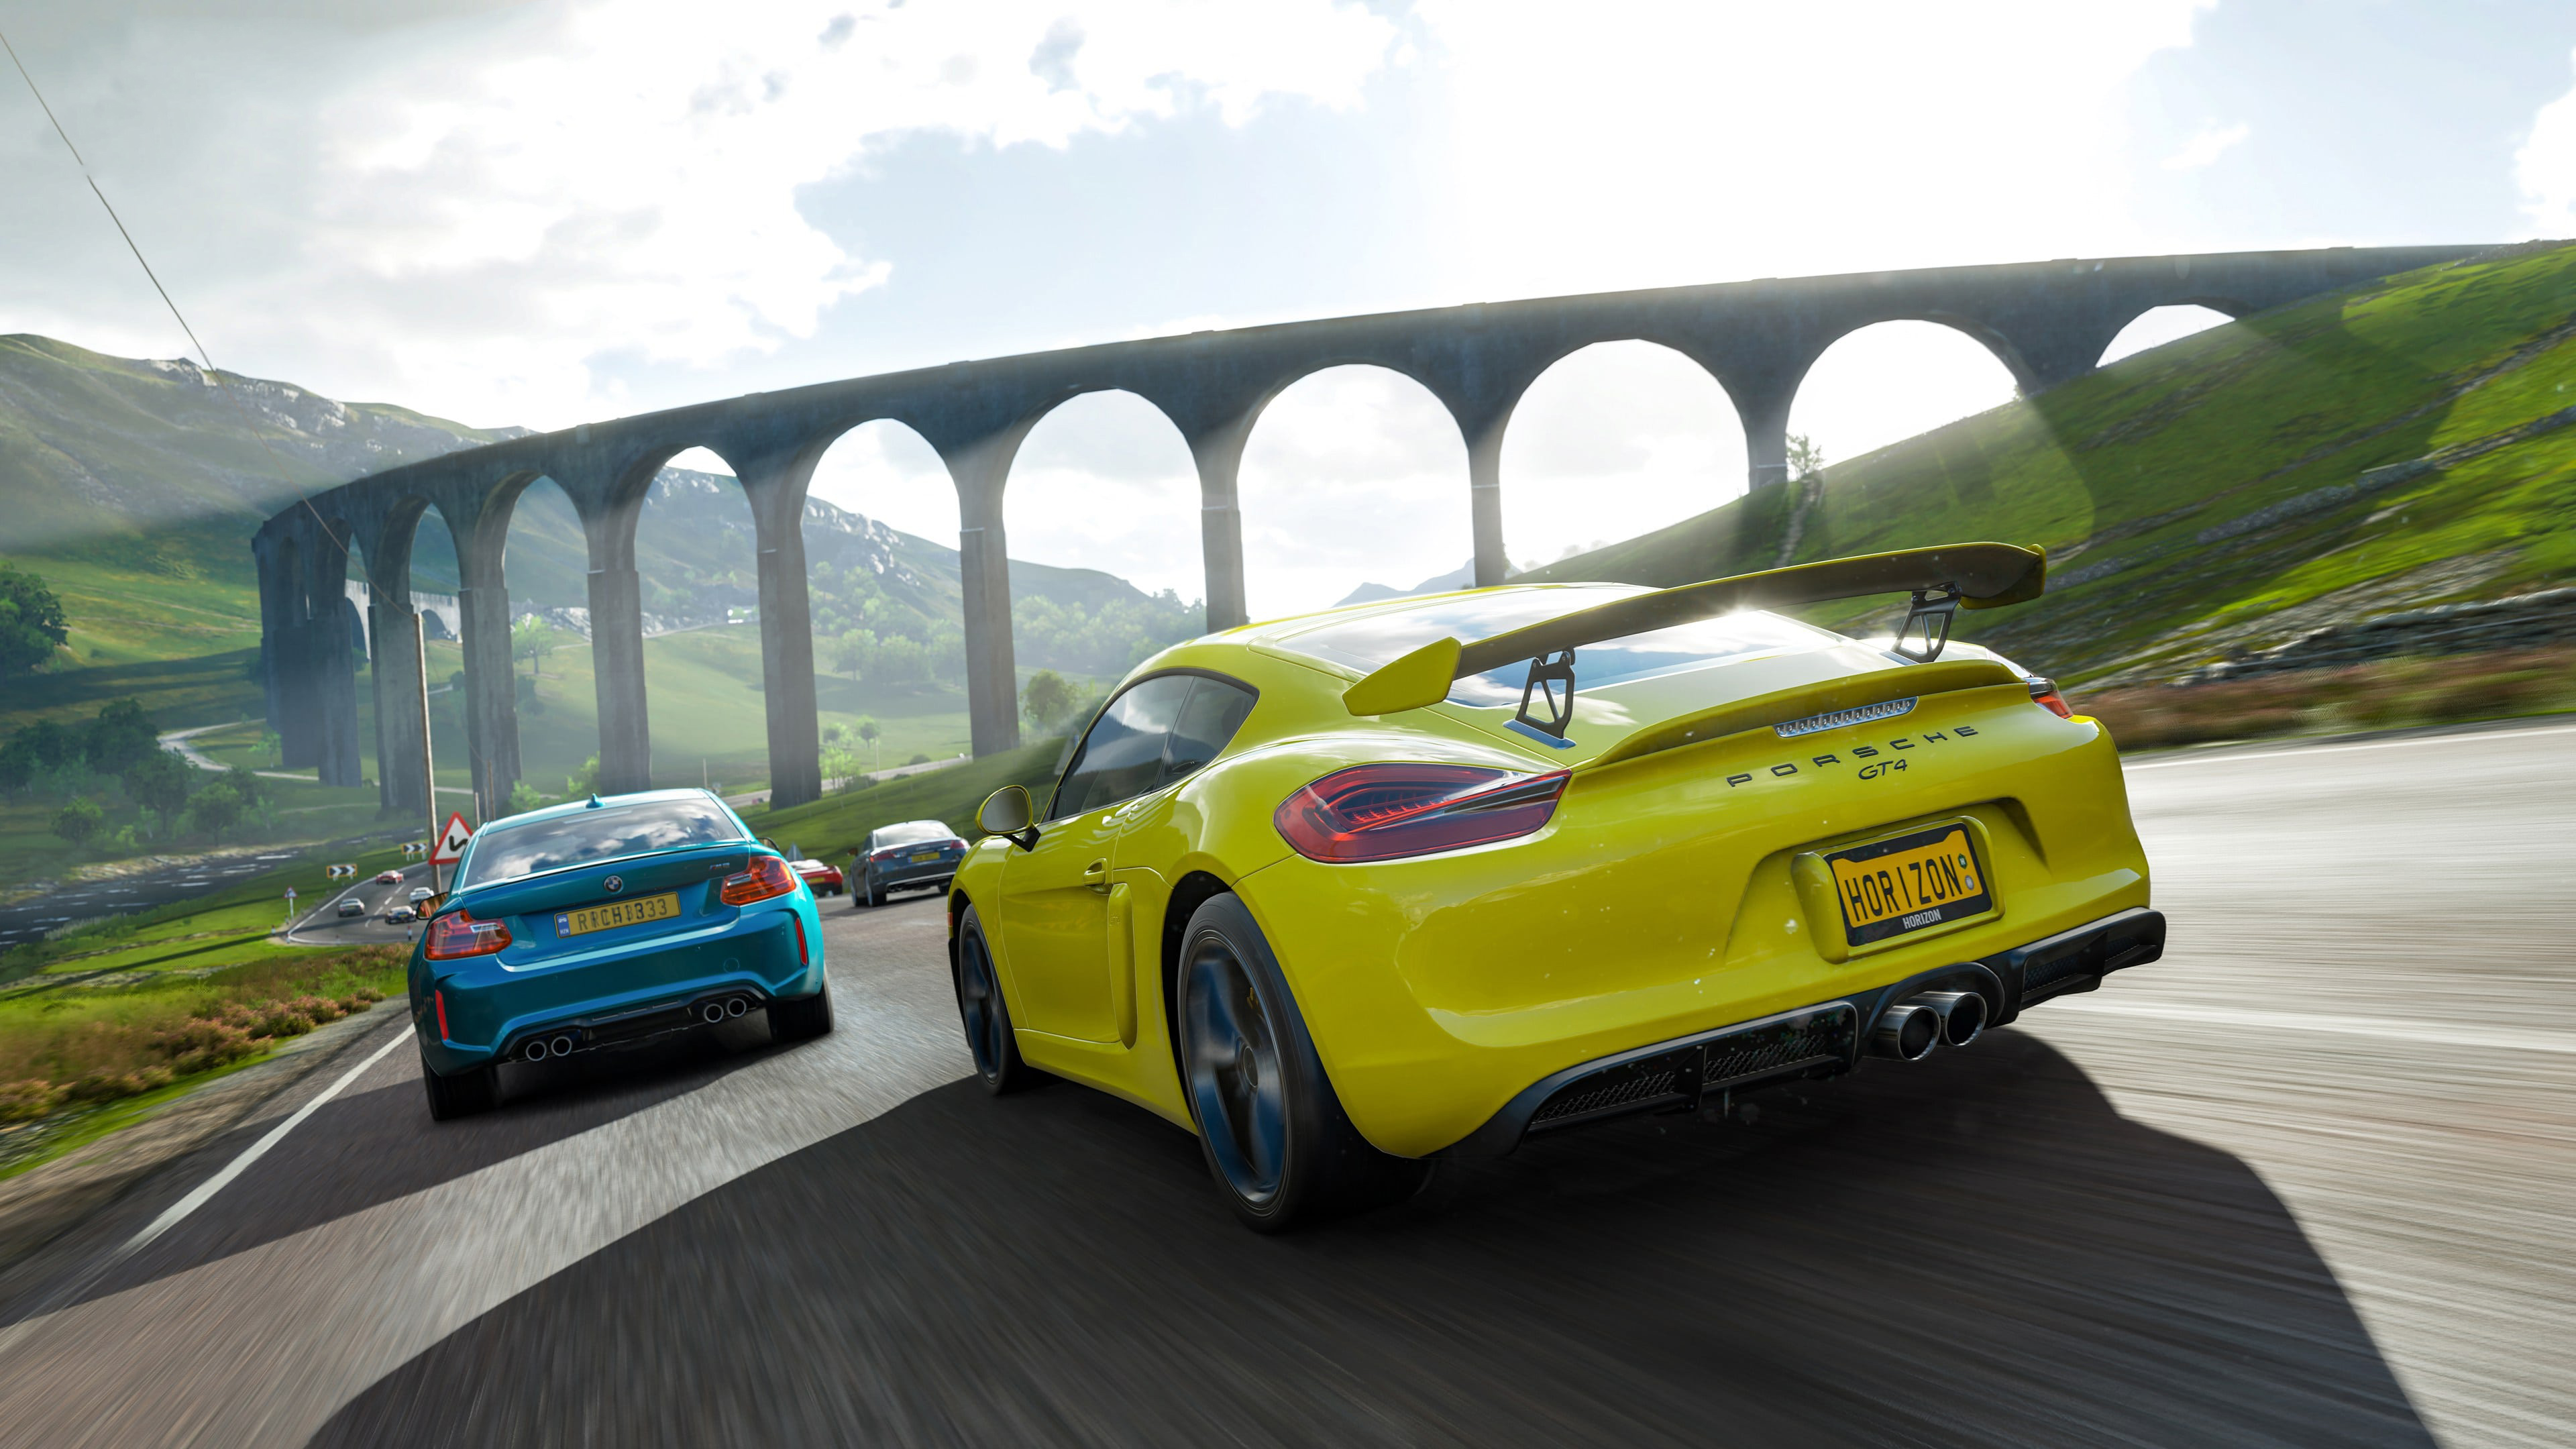 Forza horizon 4 porsche gt4 hd games 4k wallpapers images backgrounds photos and pictures - Forza logo wallpaper ...